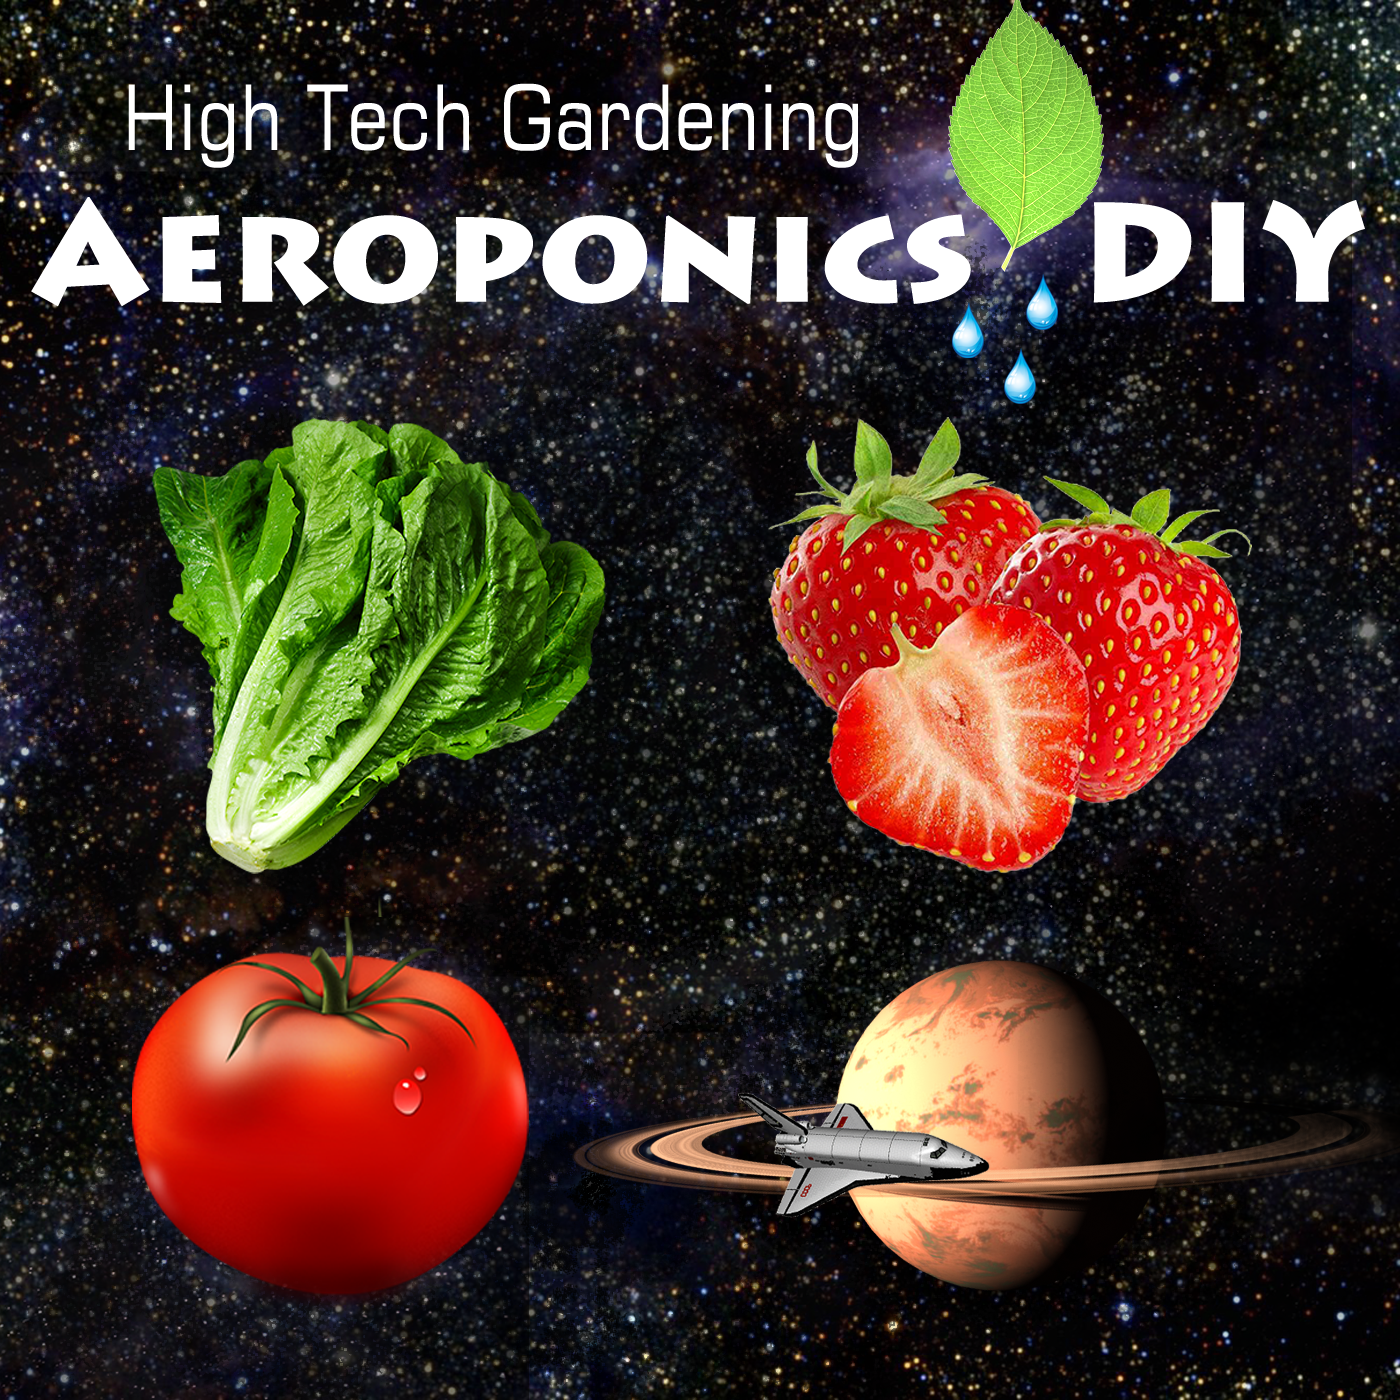 The Aeroponics DIY Podcast | Indoor Gardening | High Tech Growing | Vertical Farming